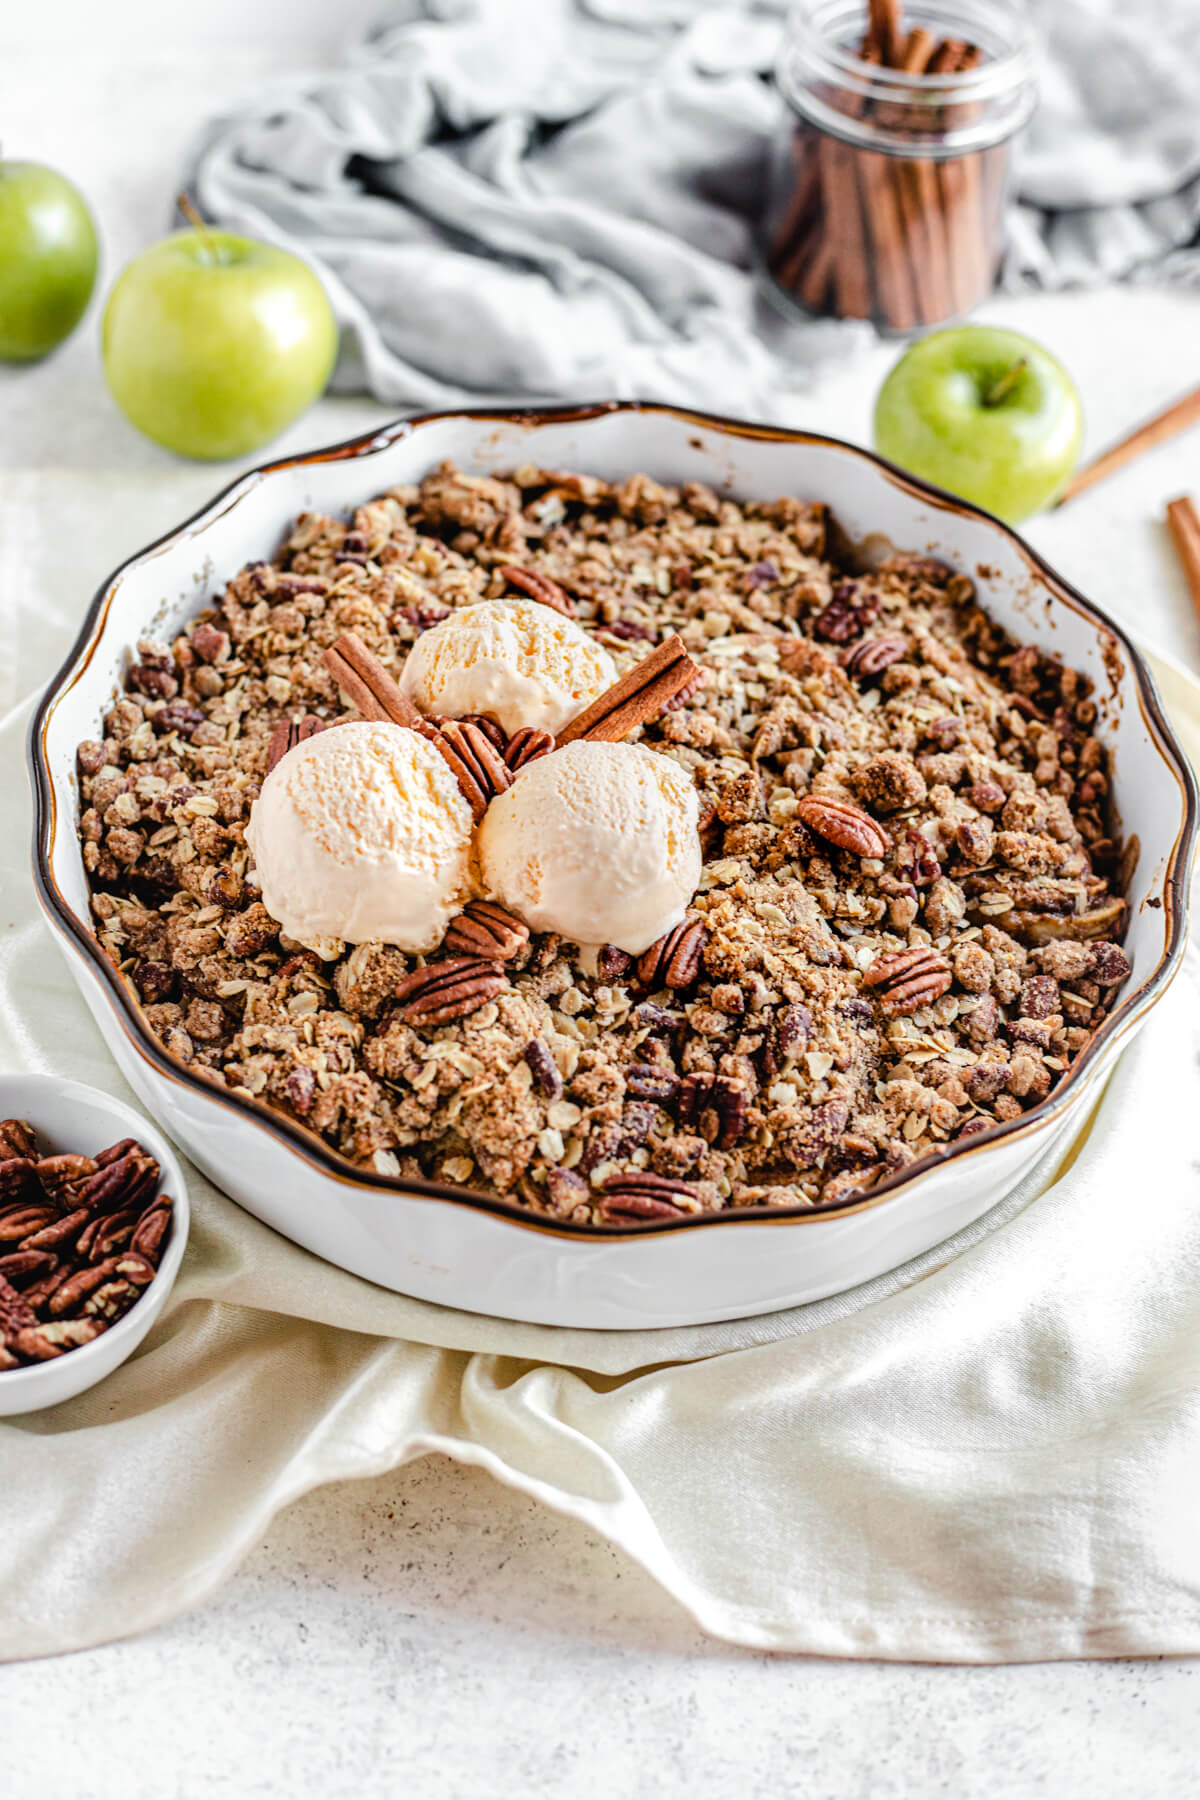 apple crisp in white pie dish topped with ice cream and cinnamon sticks